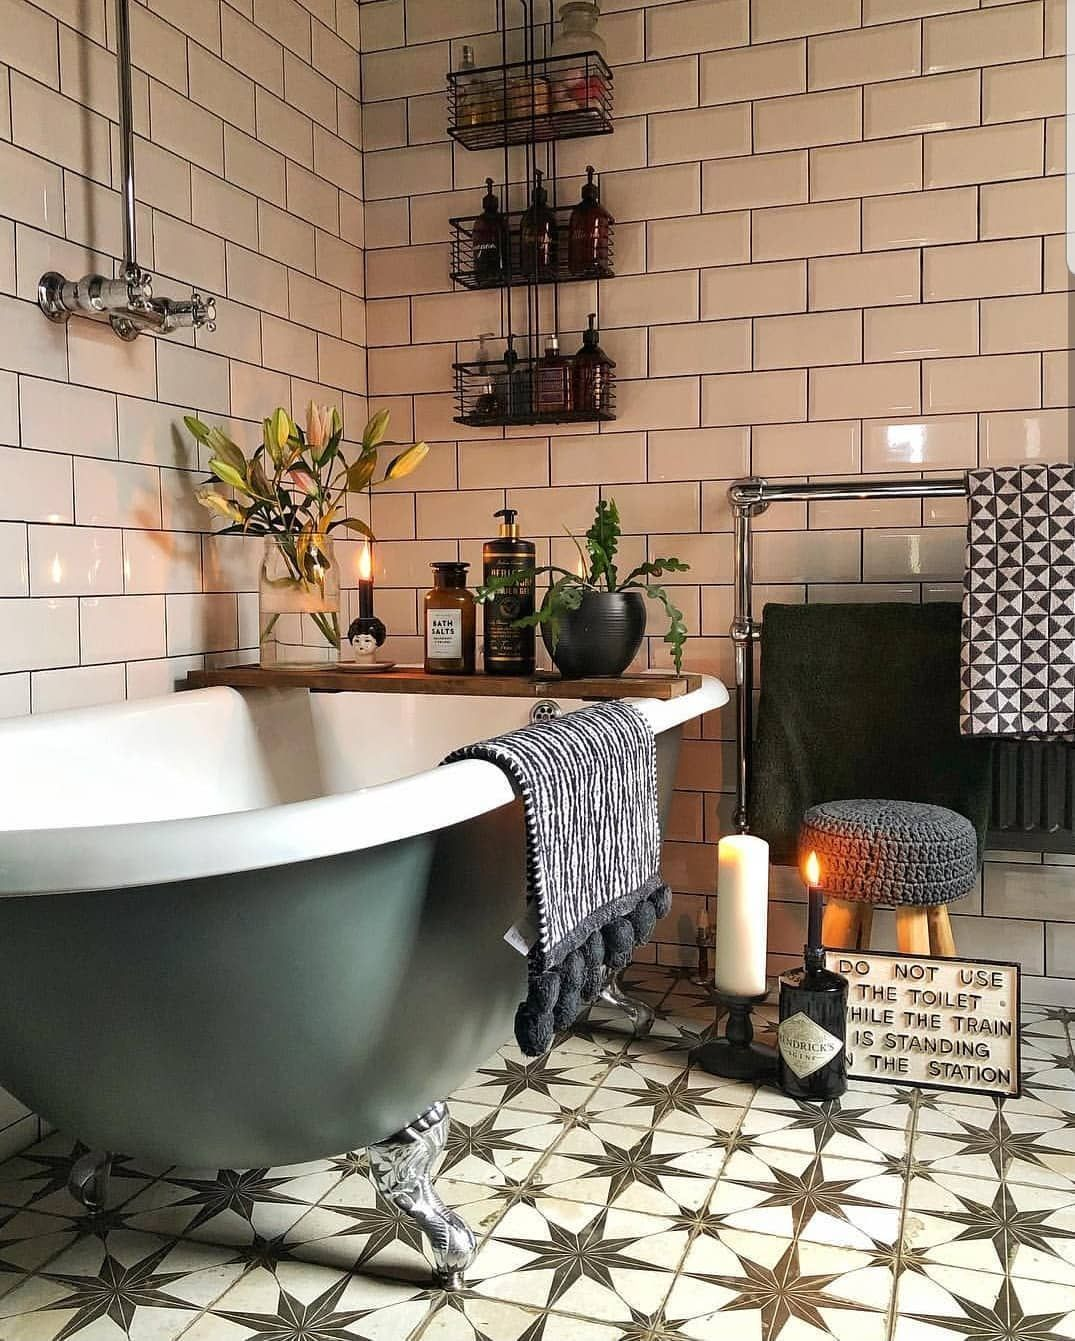 40 Amazing Bohemian Style Bathroom Decor Ideas - HMDCRTN